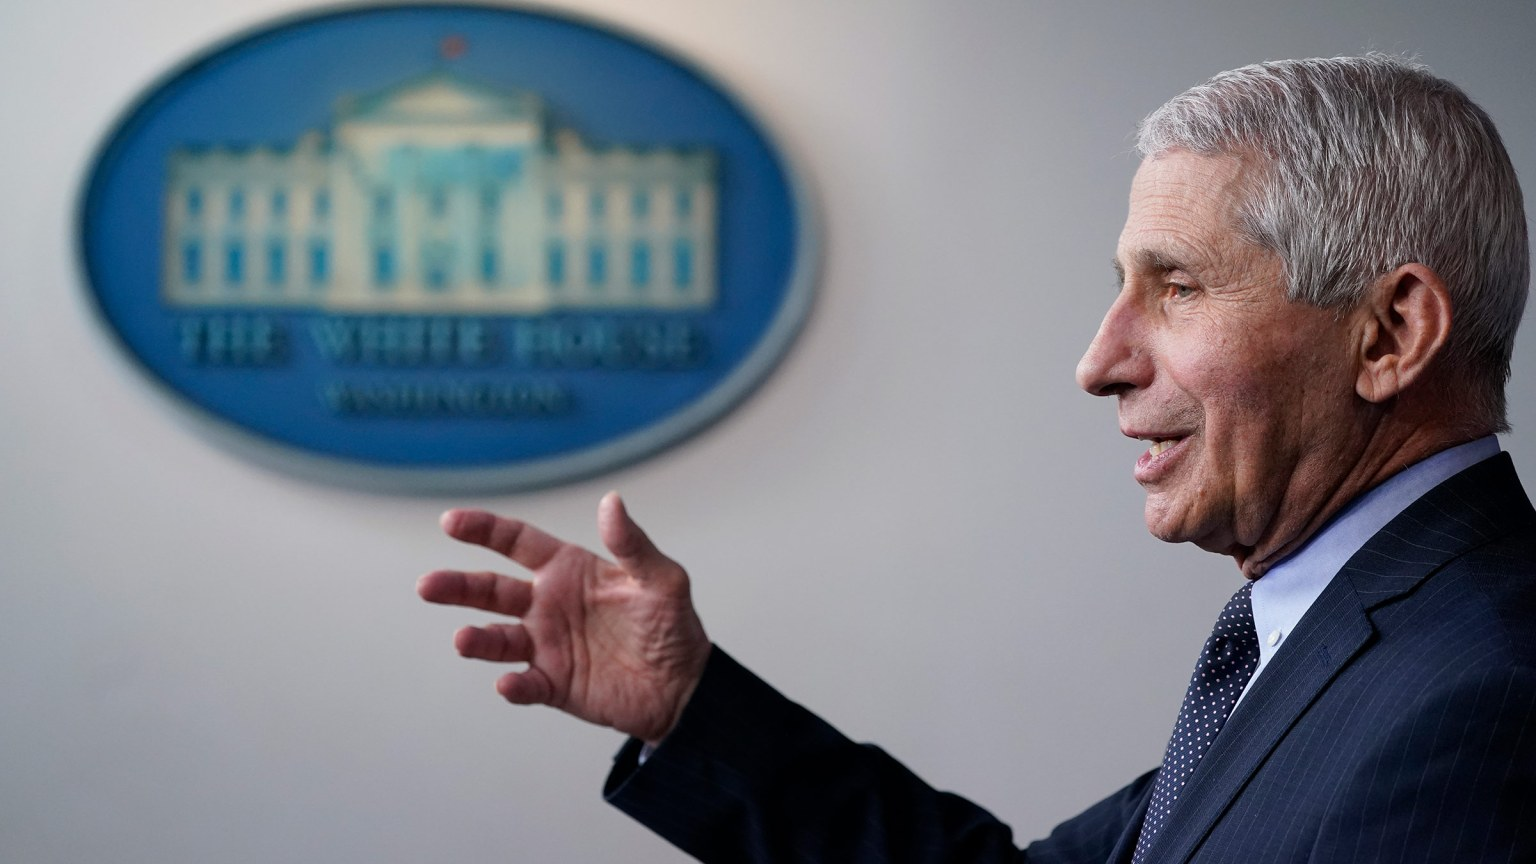 Fauci: 70% to 85% of Americans need to be fully vaccinated for a return to normal